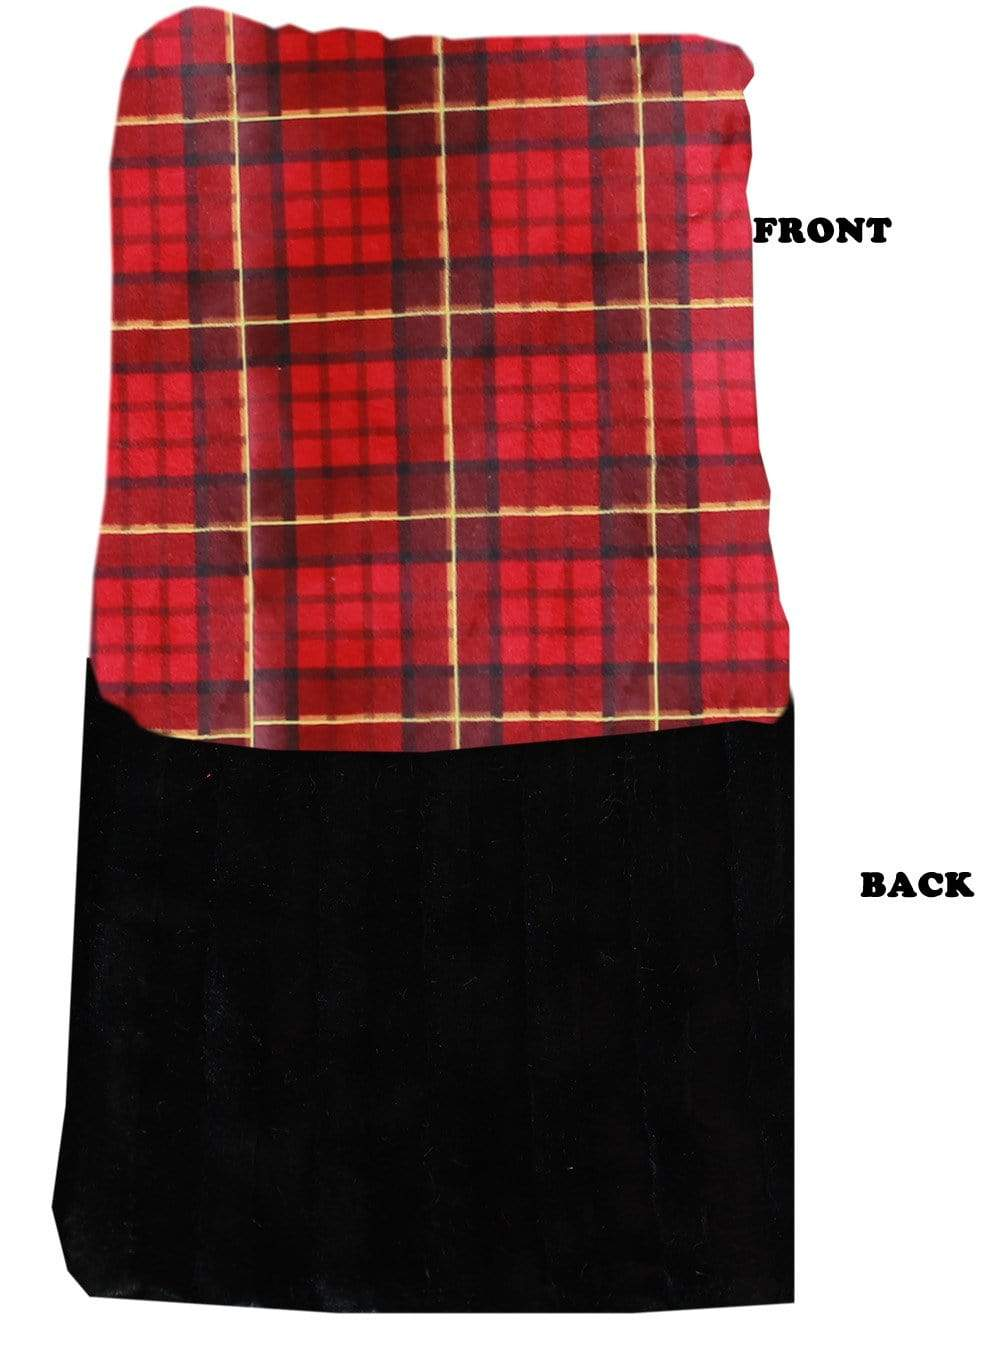 Doggy Stylz Dog-products New Luxurious Plush Carrier Blanket Red Plaid